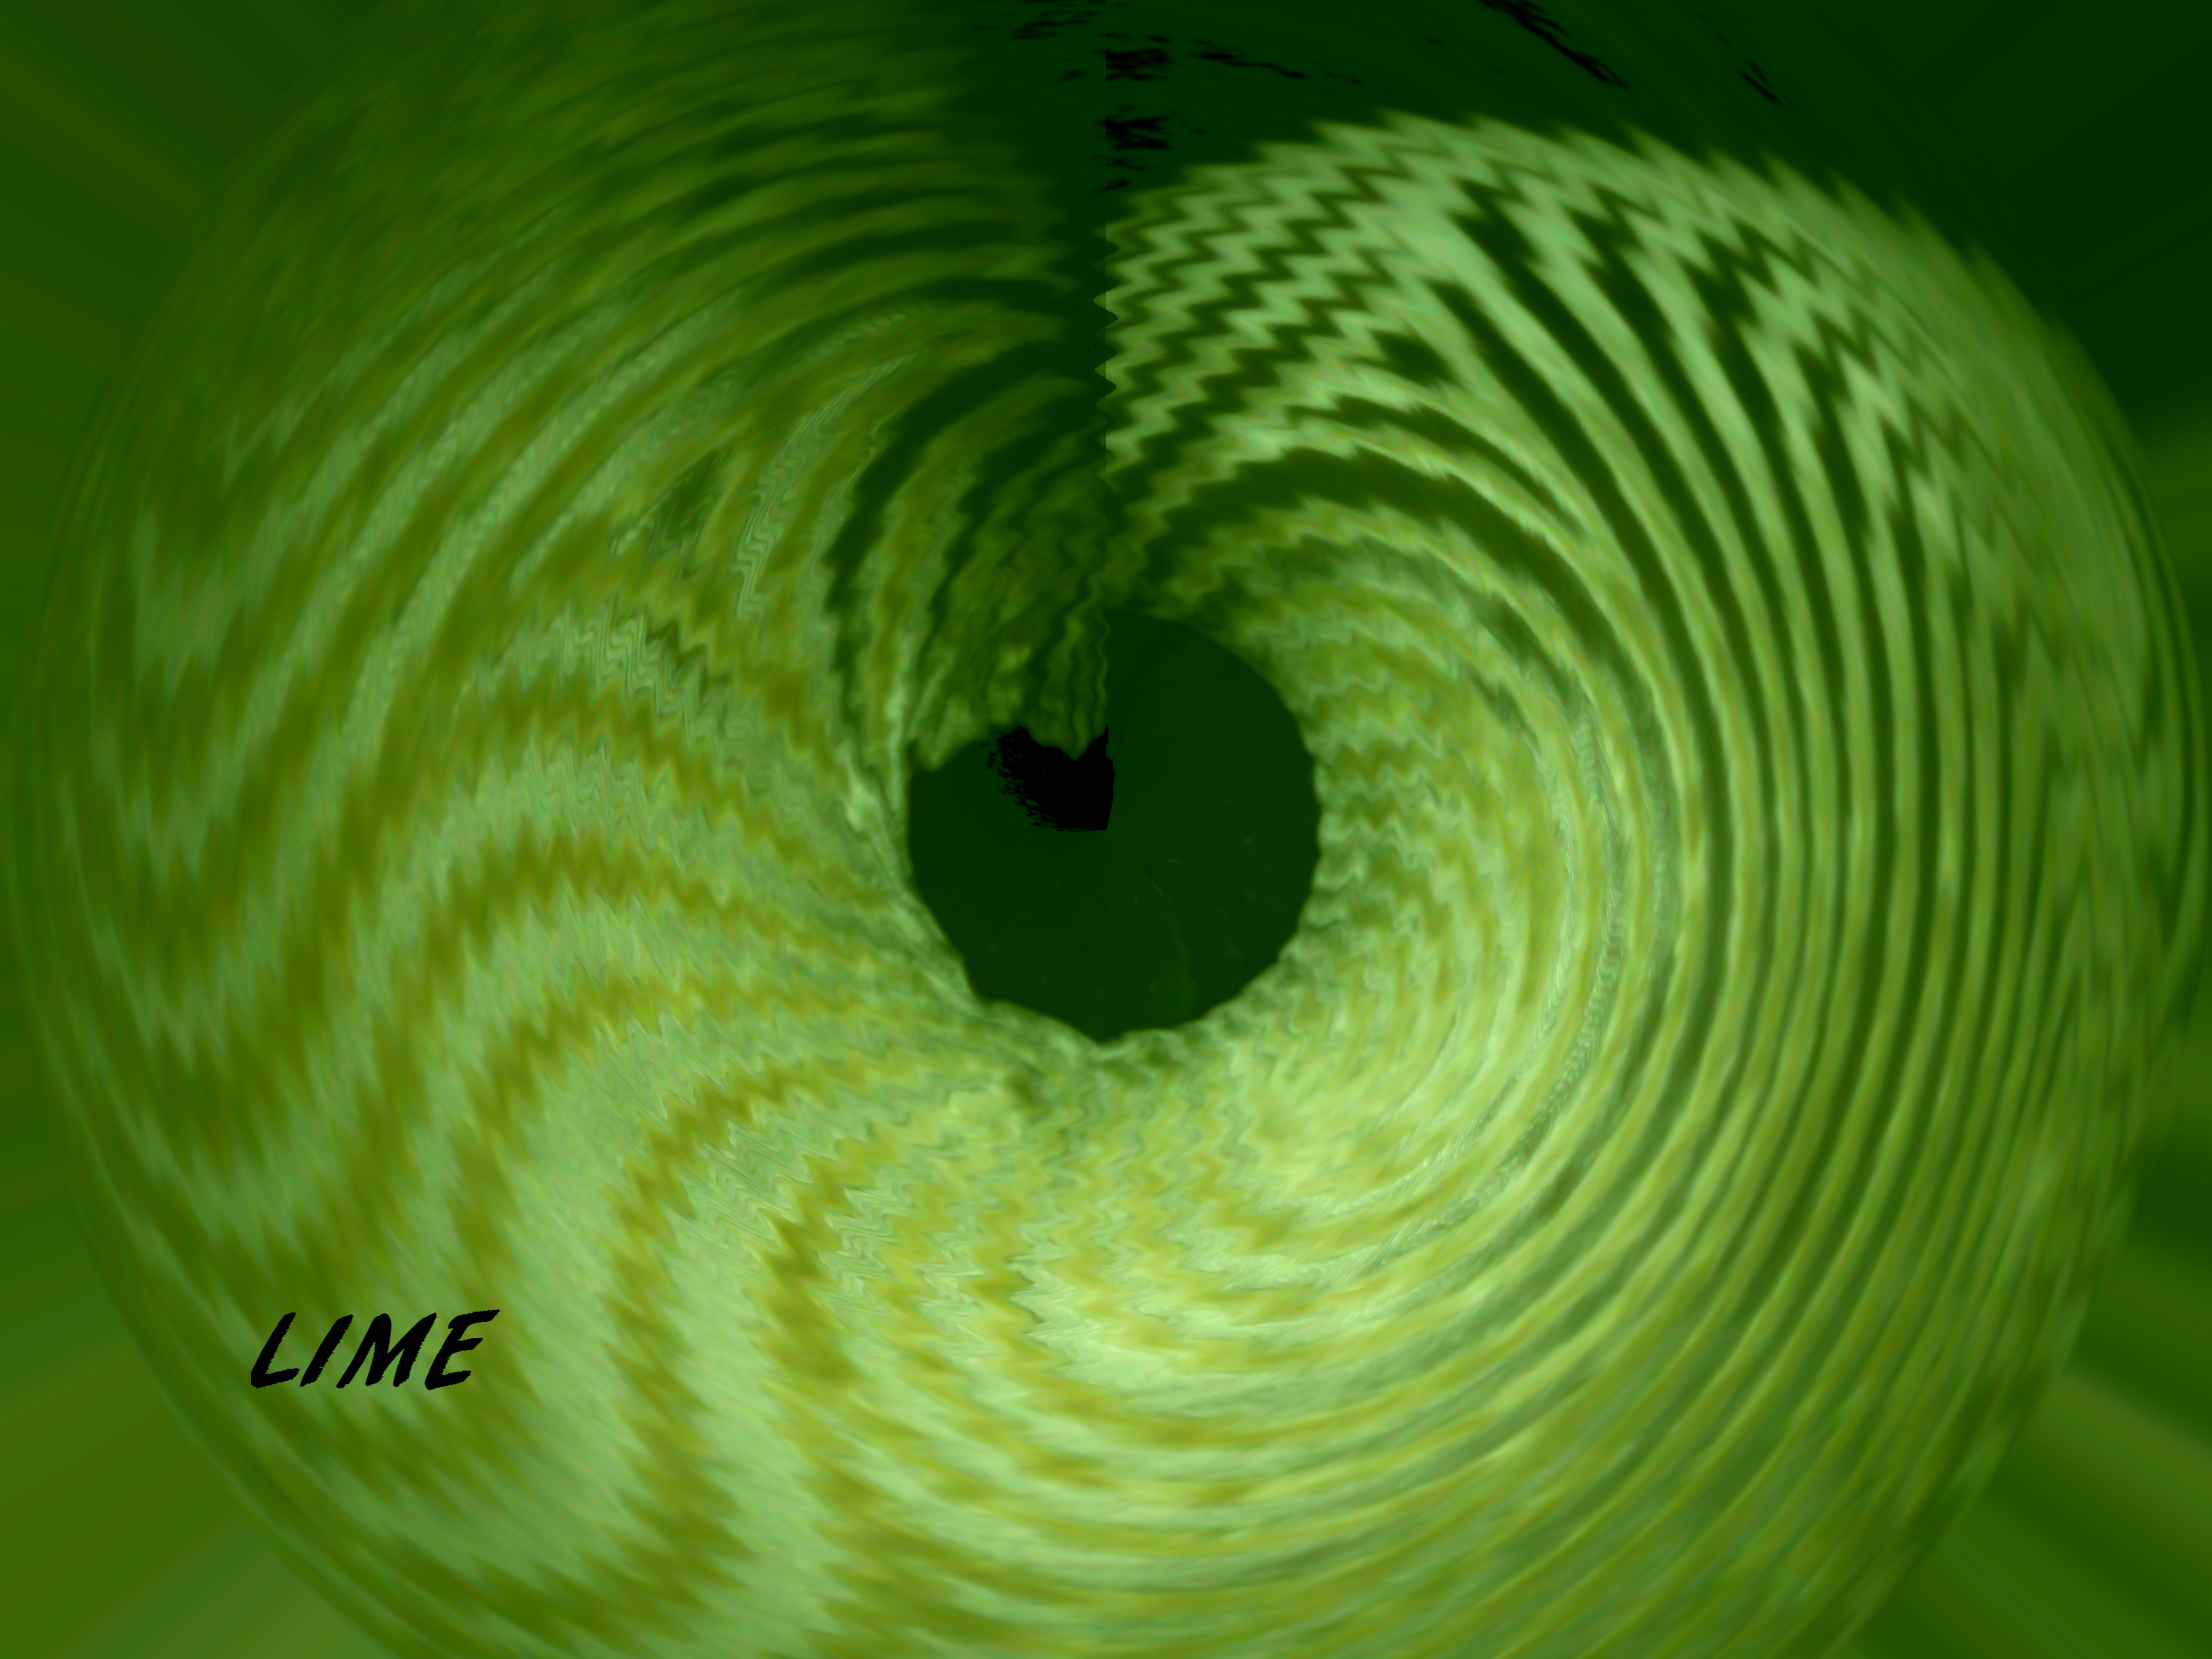 Lime - Atmospheric Producer